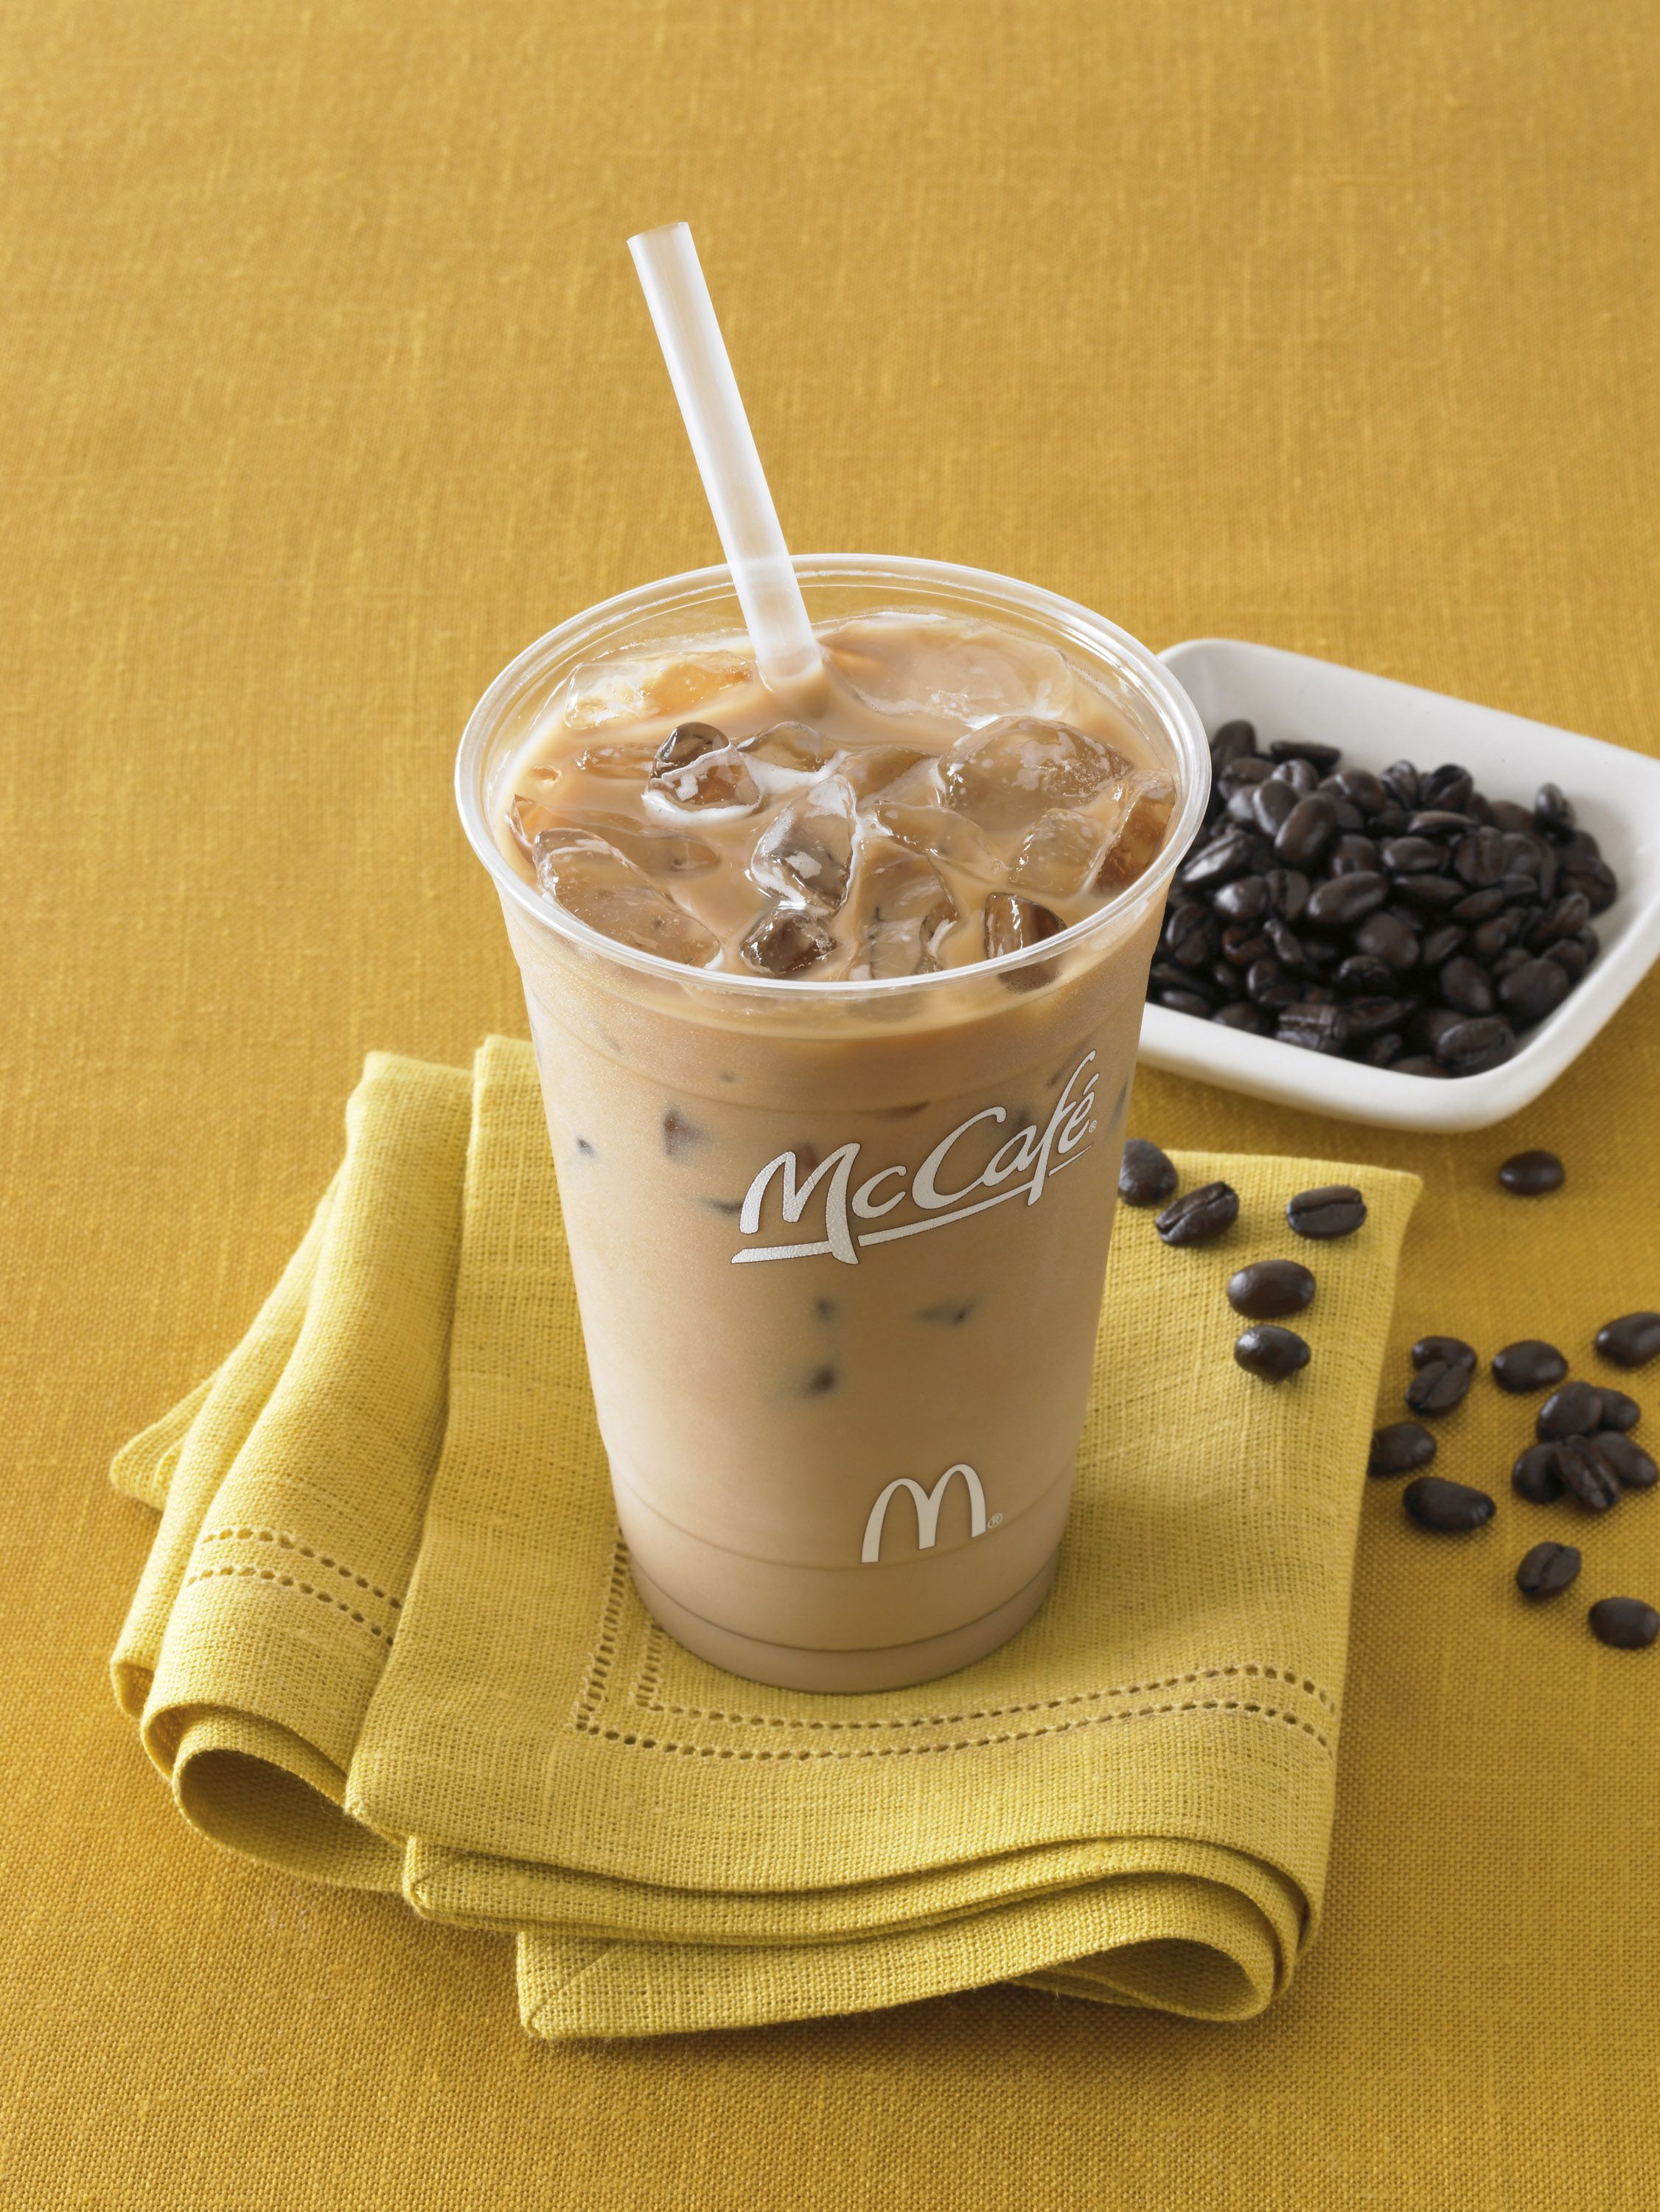 McDonald's iced coffee.some days I need an IV of this